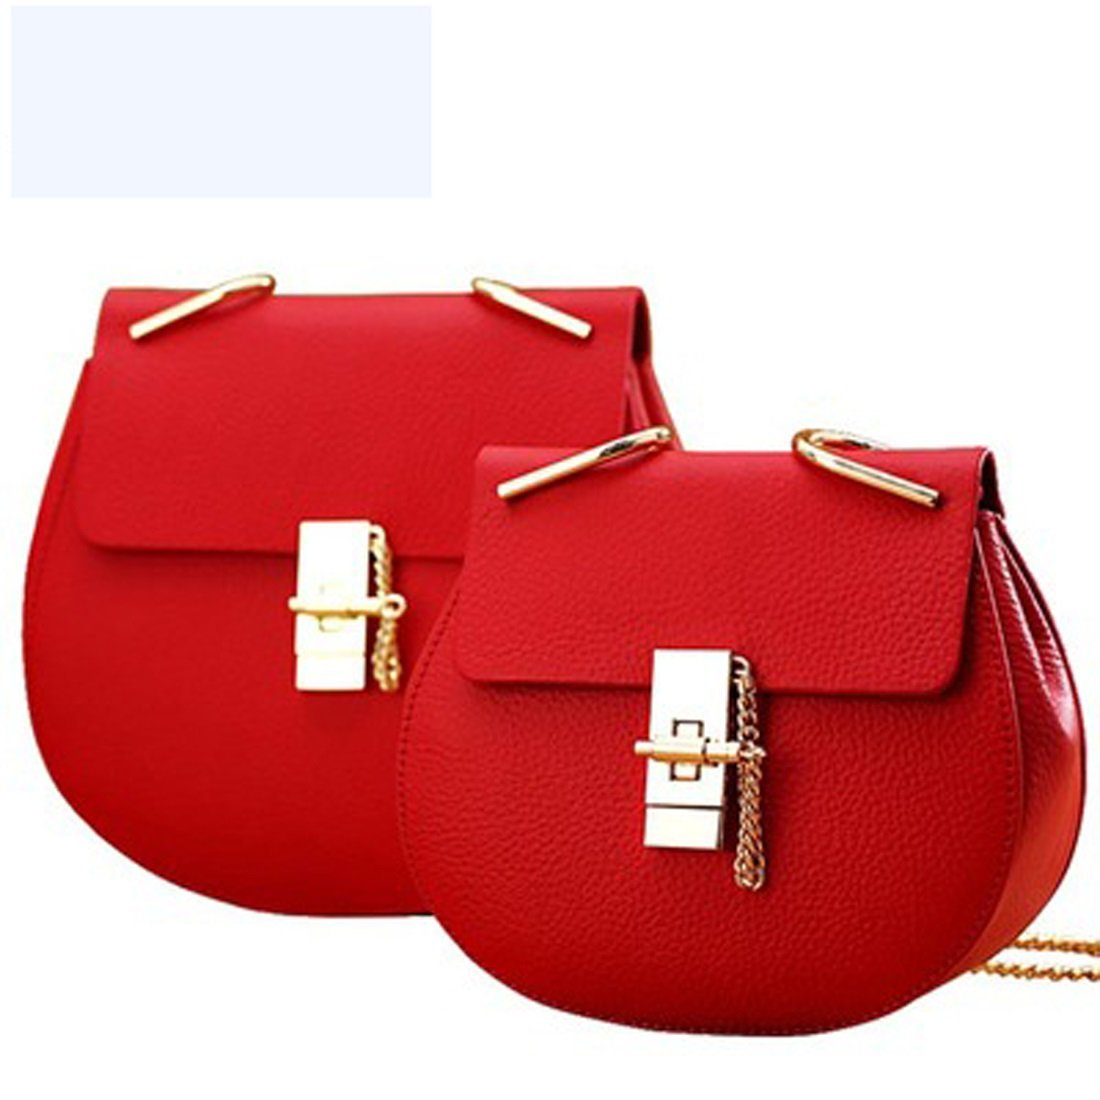 women's round small bag handbag genuine leather solid color black red chain ( Color : 3 ) WTING